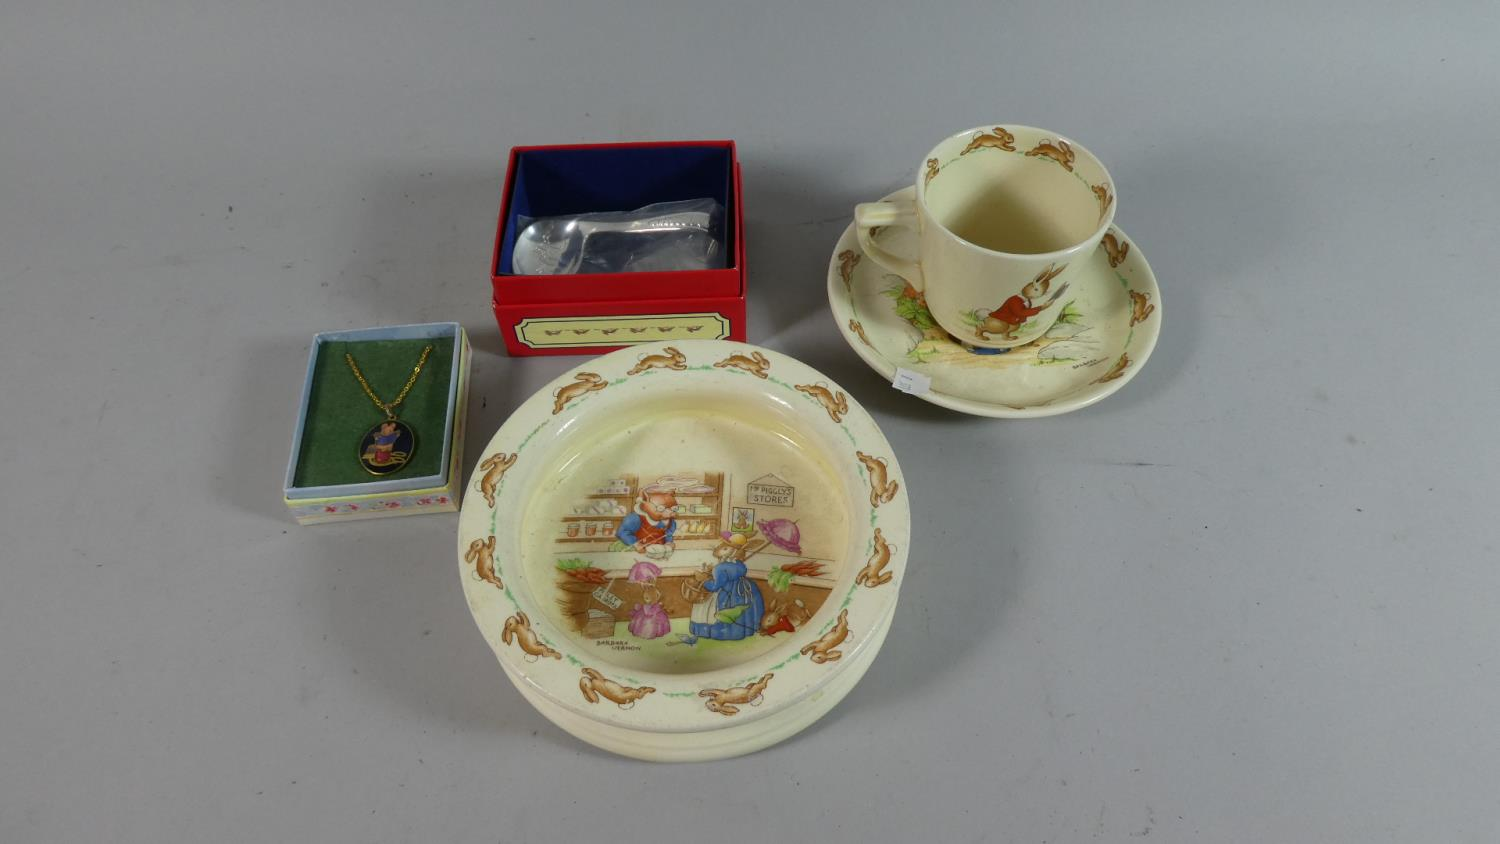 Lot 260 - A Bunnykins Cup, Saucer and Bowl, Boxed Bunnykins Feeding Spoon and Beatrix Potter Pendant